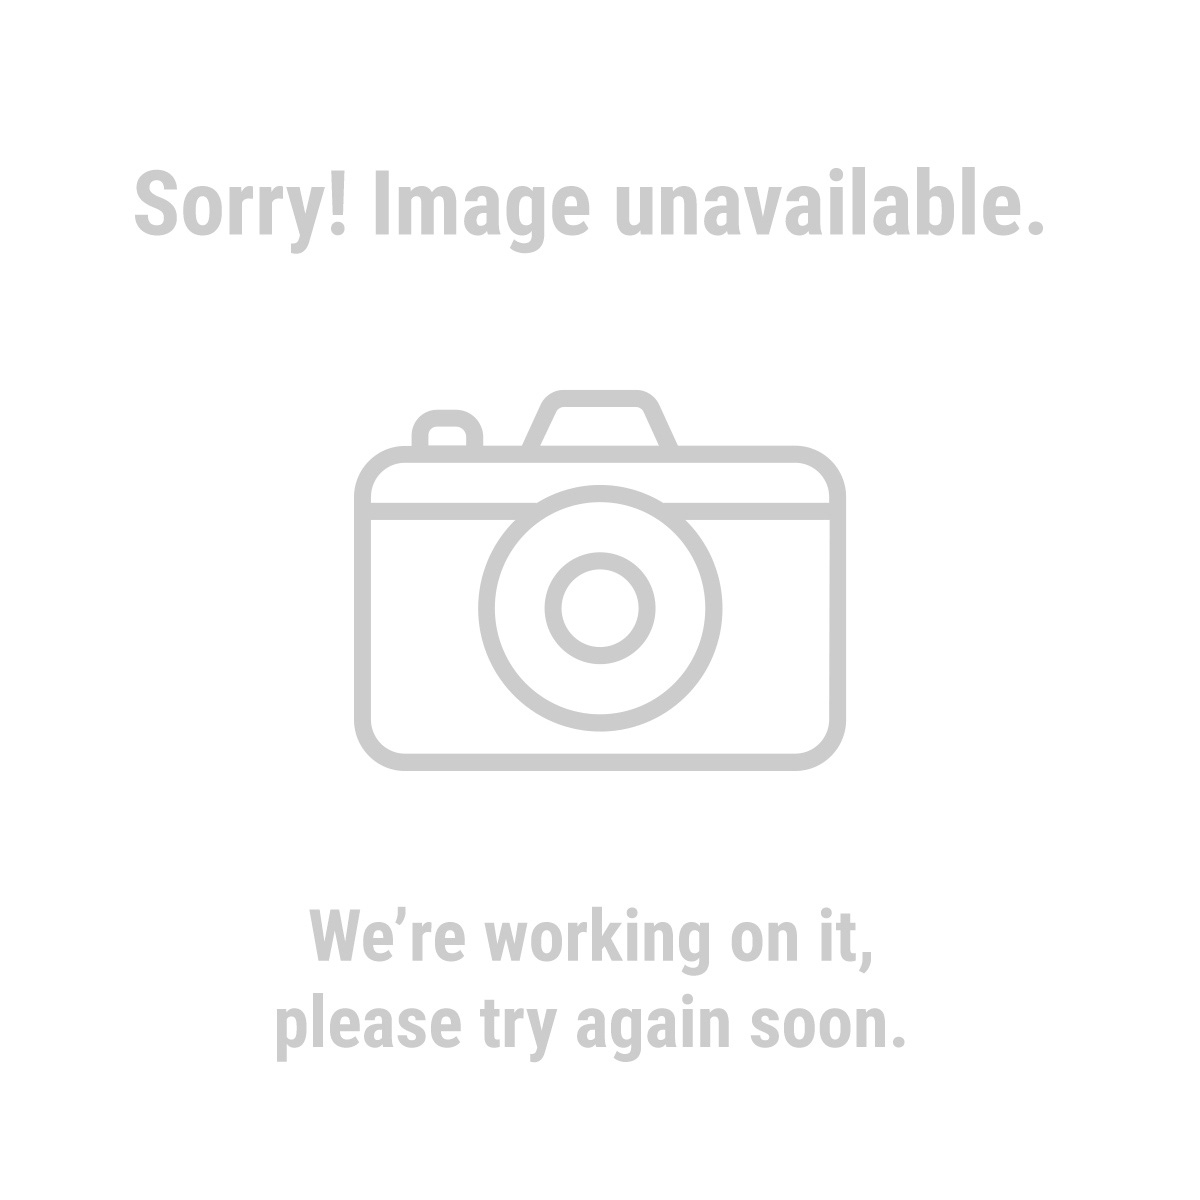 Looking At Harbor Freight 12 Quot Disc Sander To Fine Tune